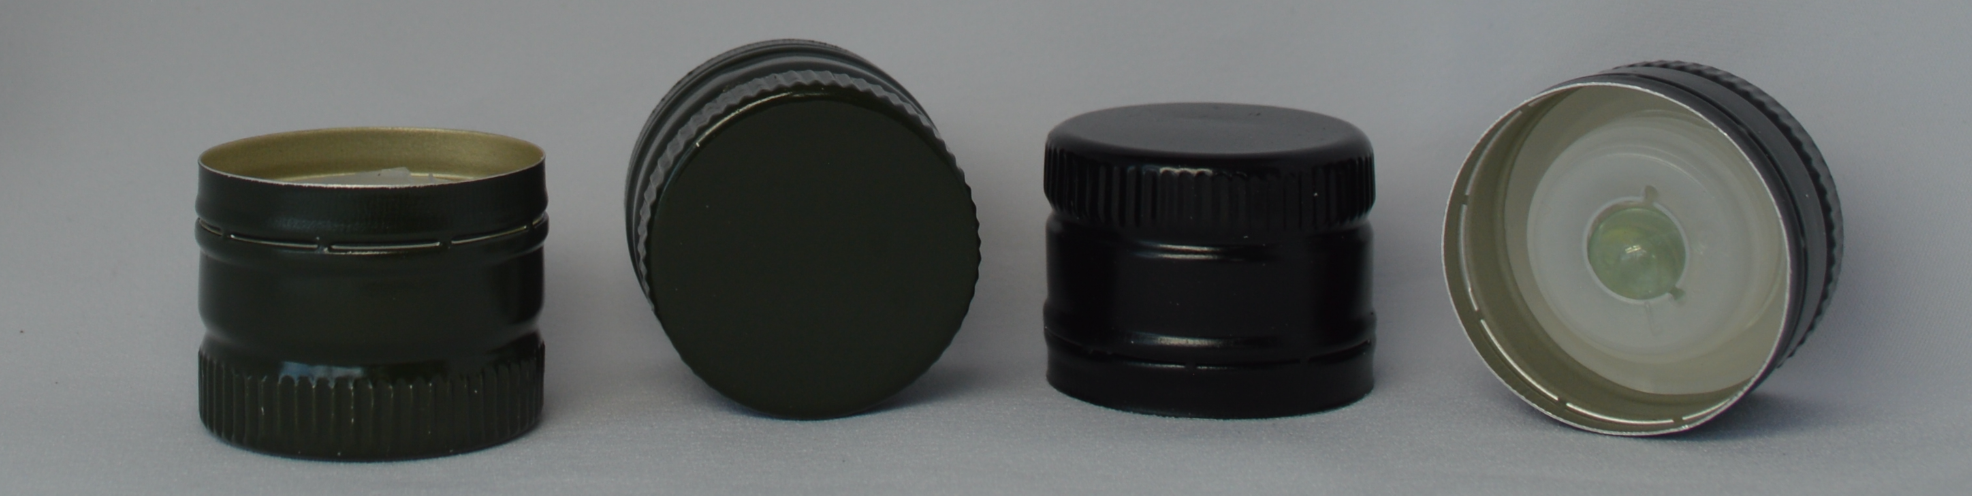 Olive and Vinegar ROPP Caps